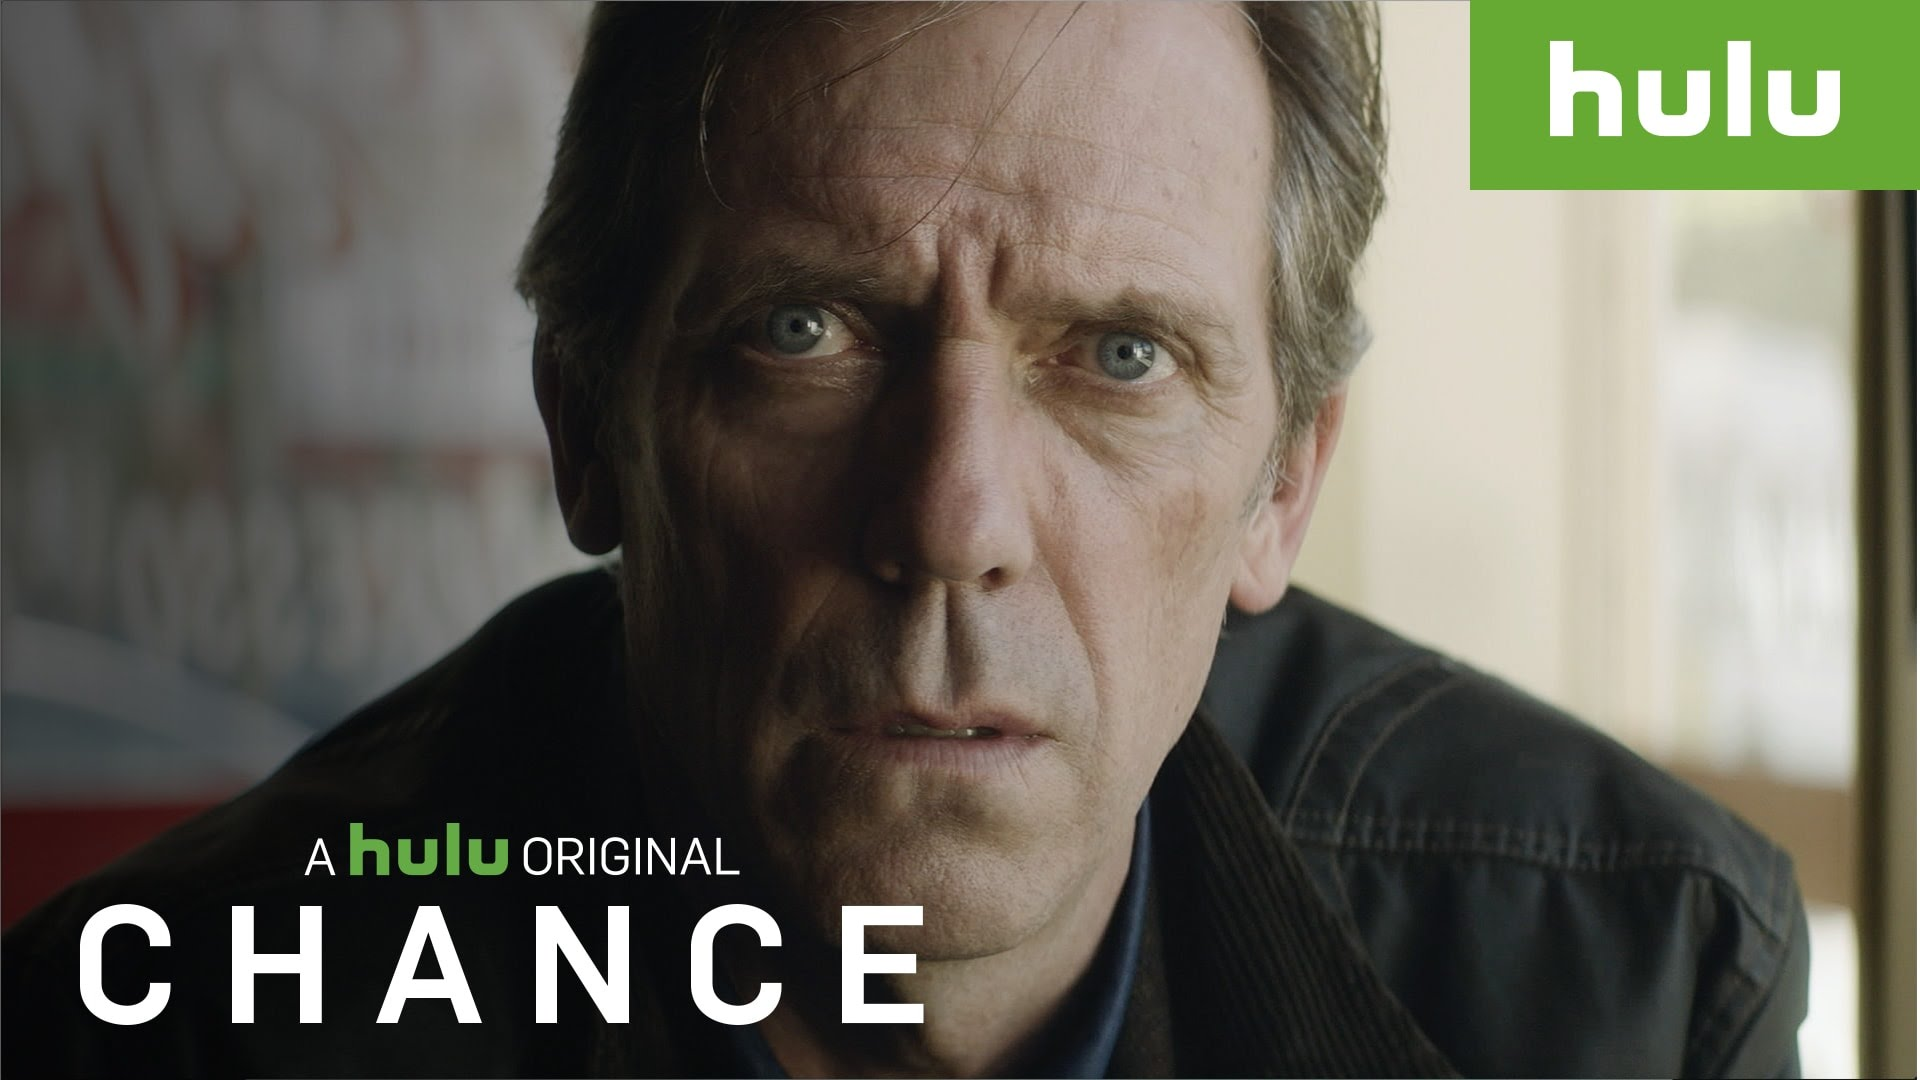 Chance (Season 1): House will be turning 12 years old soon, but Hugh Laurie's still playing doctor in this new Hulu original series. Playing a neuropsychiatrist in San Francisco, this new thriller is sure to have the same sharp writing as its spiritual predecessor. With an Emmy-winning lead and Academy Award-nominated director Lenny Abrahamson at the helm, expect a cinematic and suspenseful drama, when it arrives October 19th on Hulu.